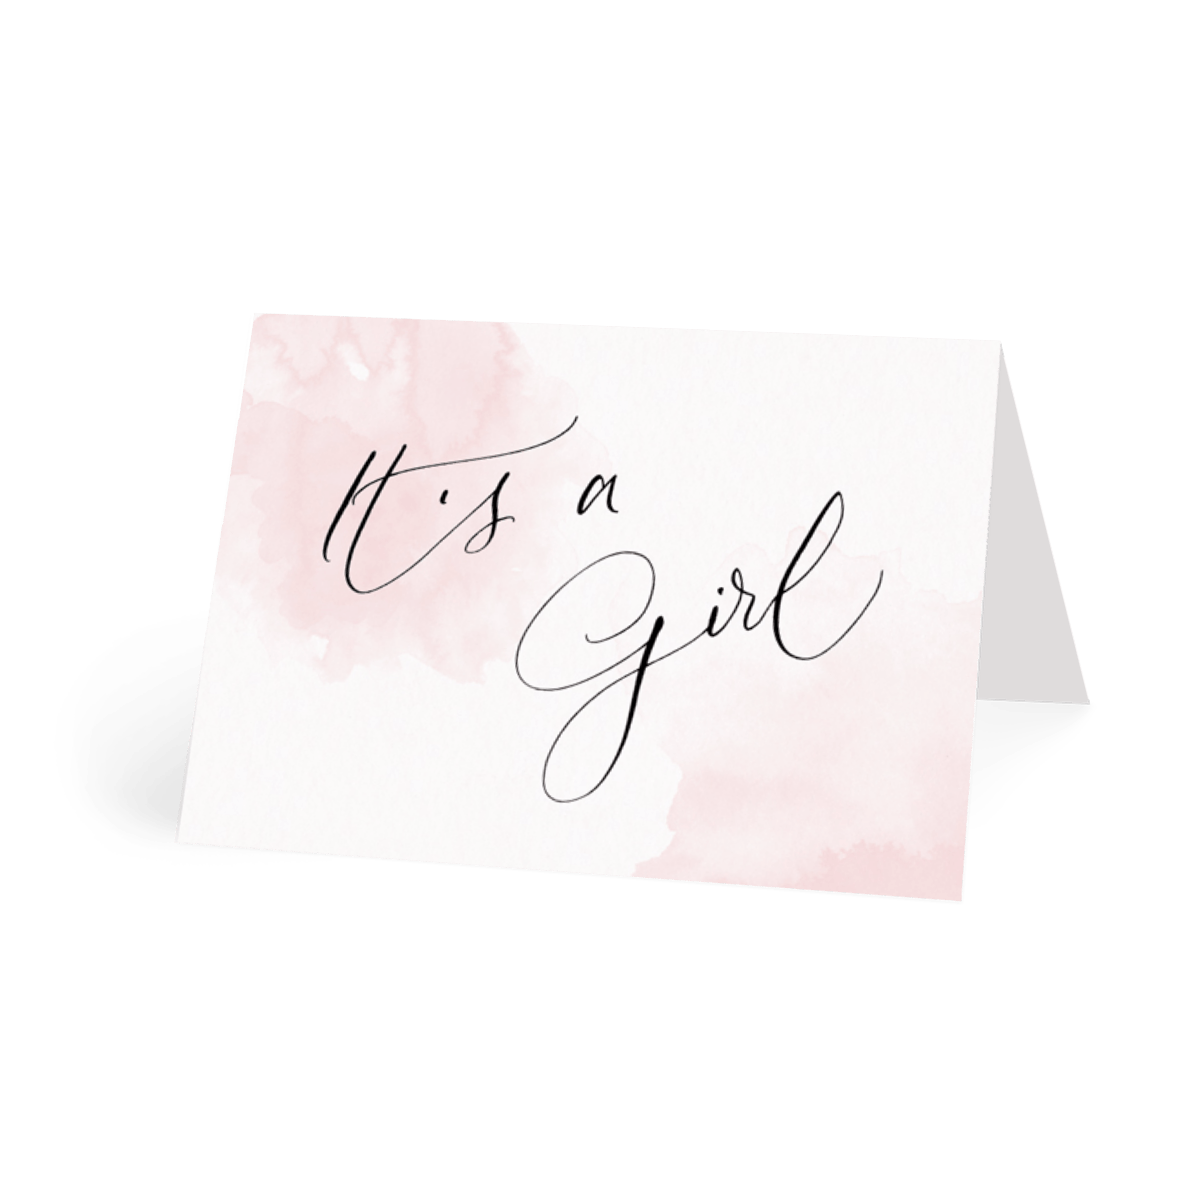 Https%3a%2f%2fwww.papier.com%2fproduct image%2f26379%2f14%2fit s a girl blush 6608 front 1501520893.png?ixlib=rb 1.1